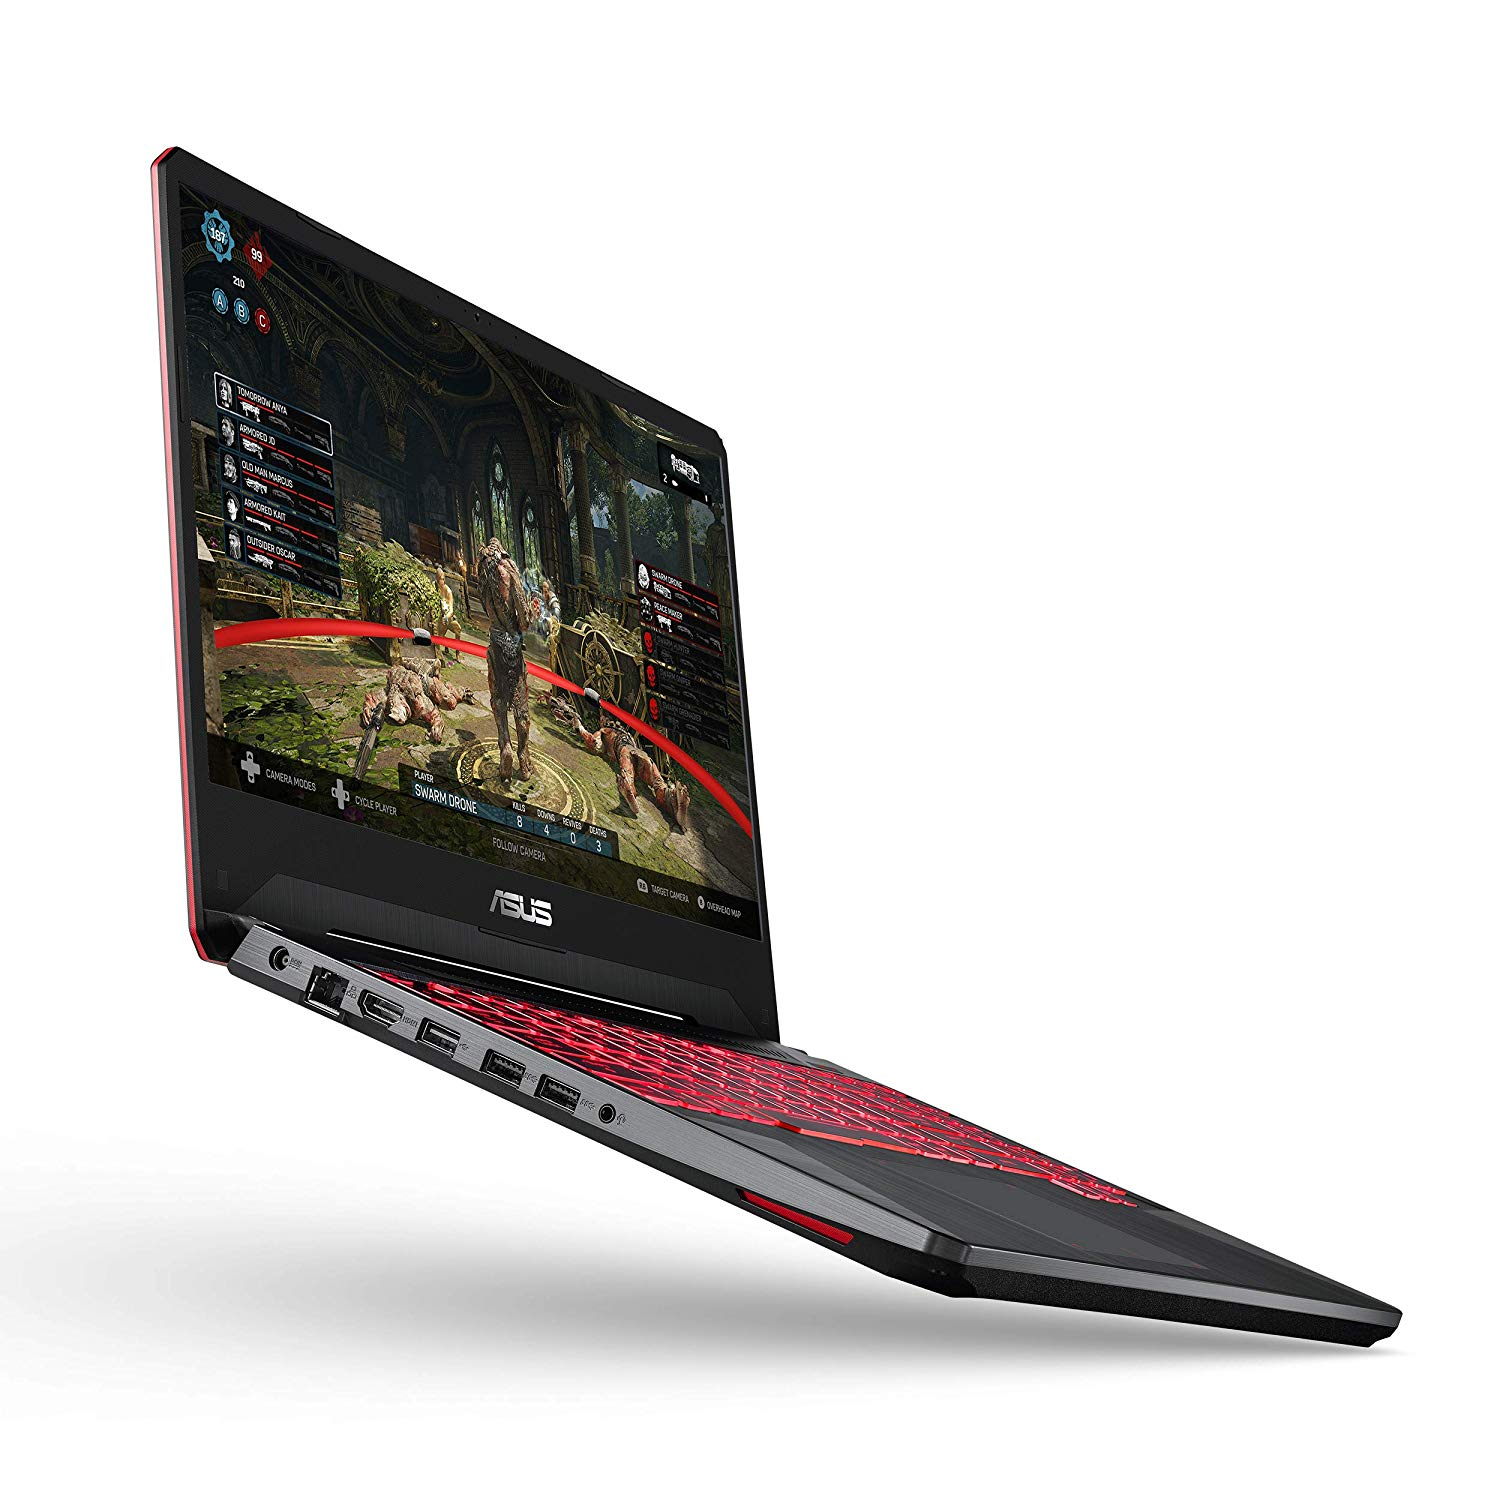 "Asus TUF Gaming Laptop, 15.6"" IPS Level Full HD, AMD Ryzen 5 3550H Processor, AMD Radeon Rx 560X, 8GB DDR4, 256GB PCIe Nvme SSD, Gigabit WiFi, Windows 10 - FX505DY-ES51by ASUS Product Code: B07M9SMWMS"